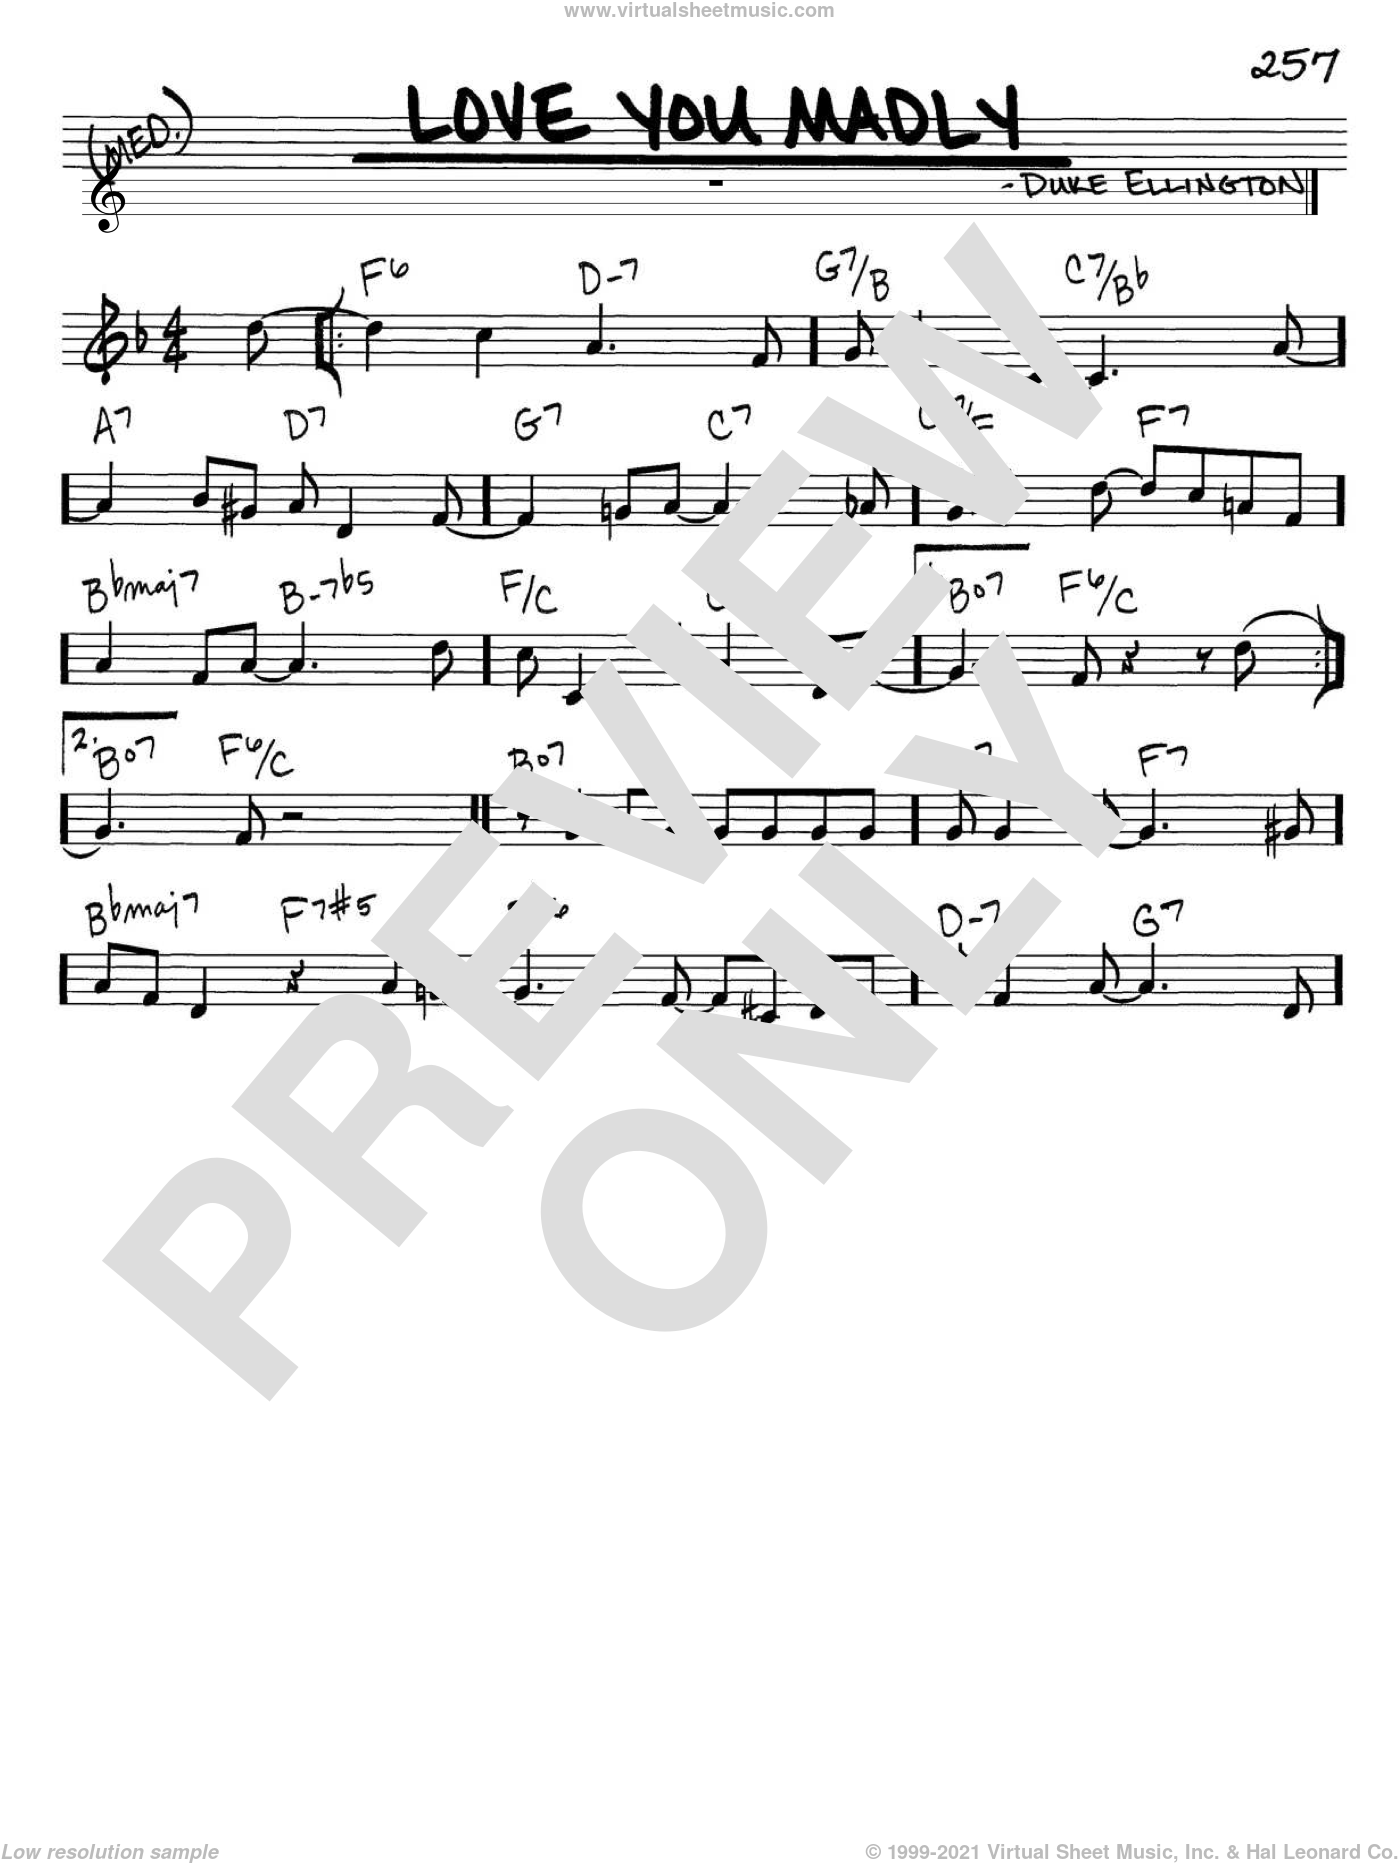 Love You Madly sheet music for voice and other instruments (C) by Duke Ellington. Score Image Preview.